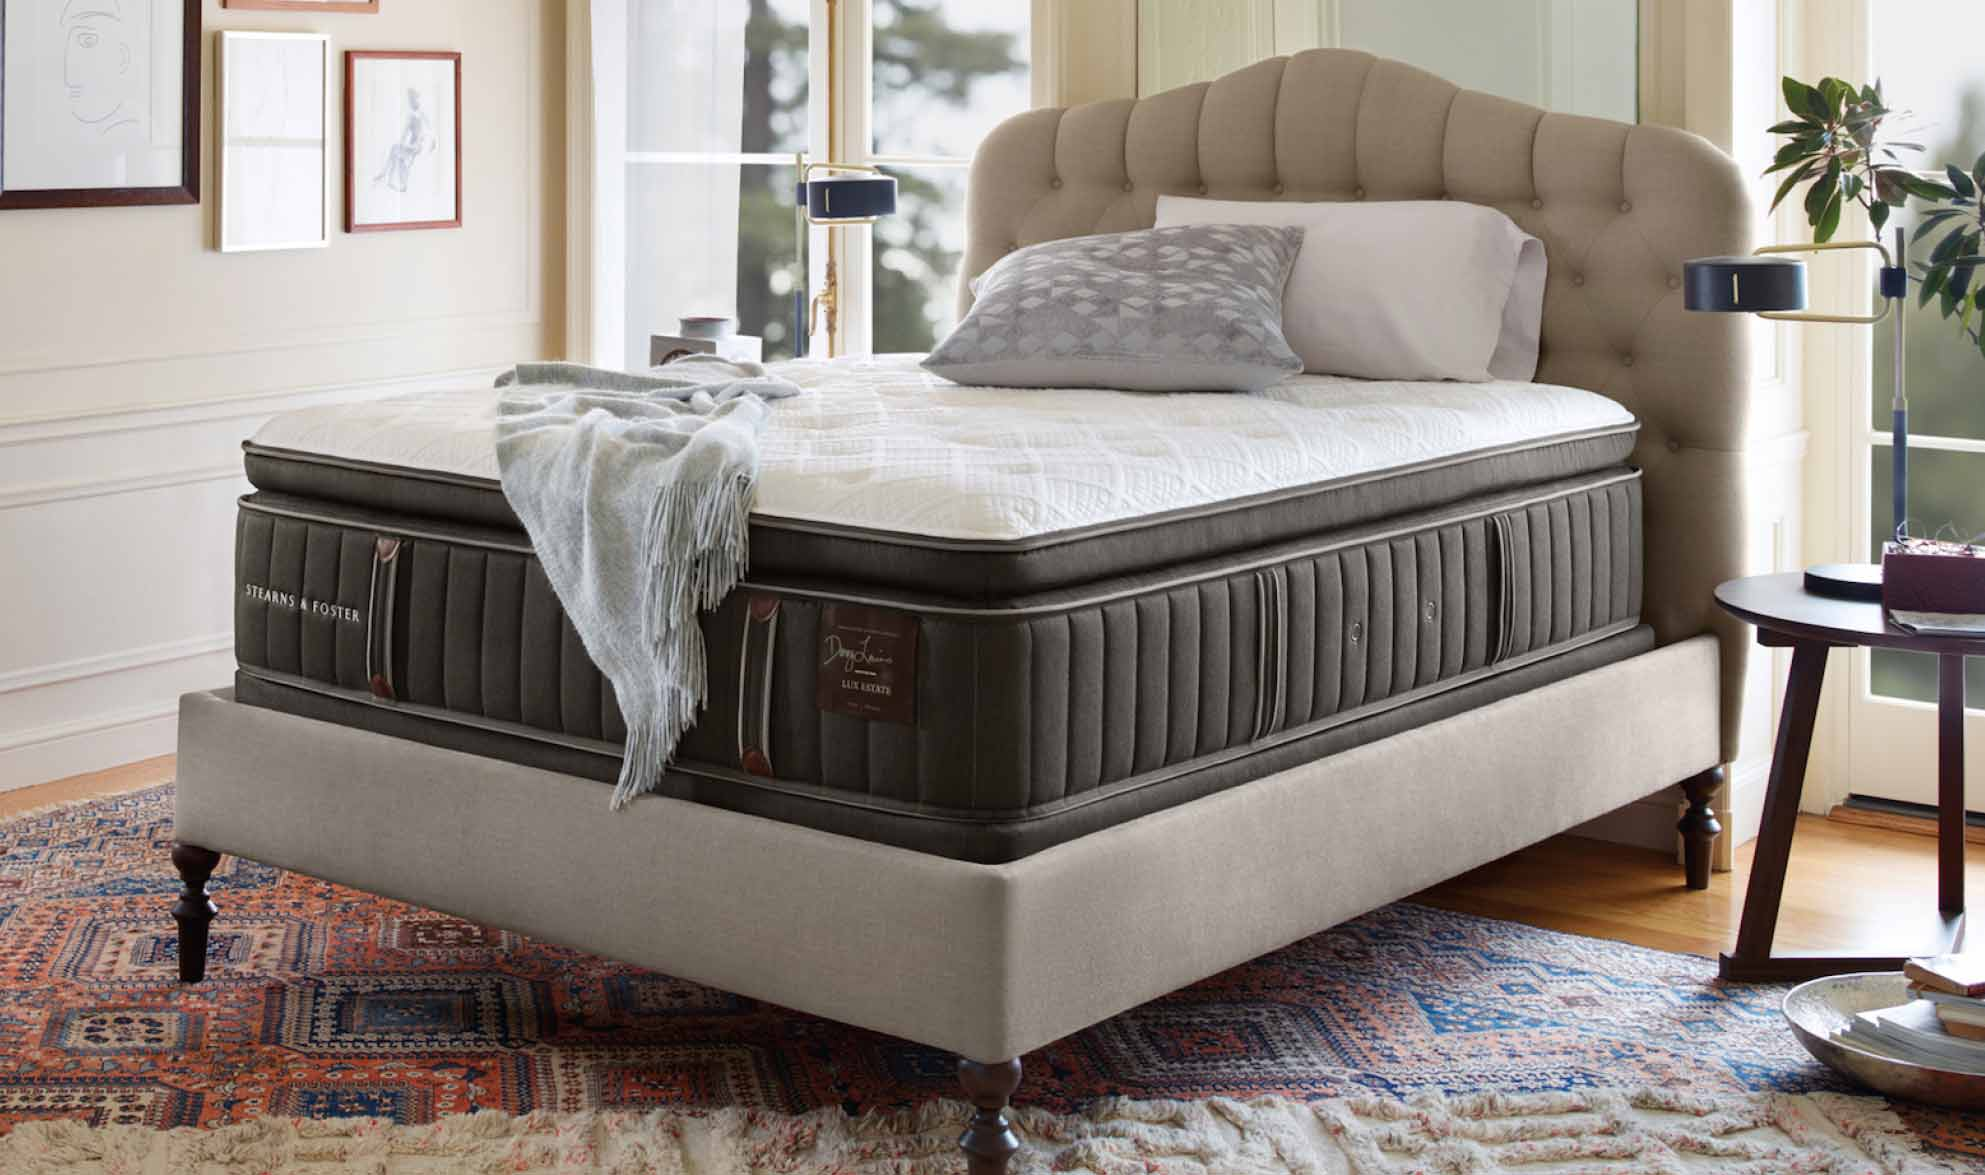 stearns and foster sleeper sofa mattress mirrors over ideas bed design inspiration the most